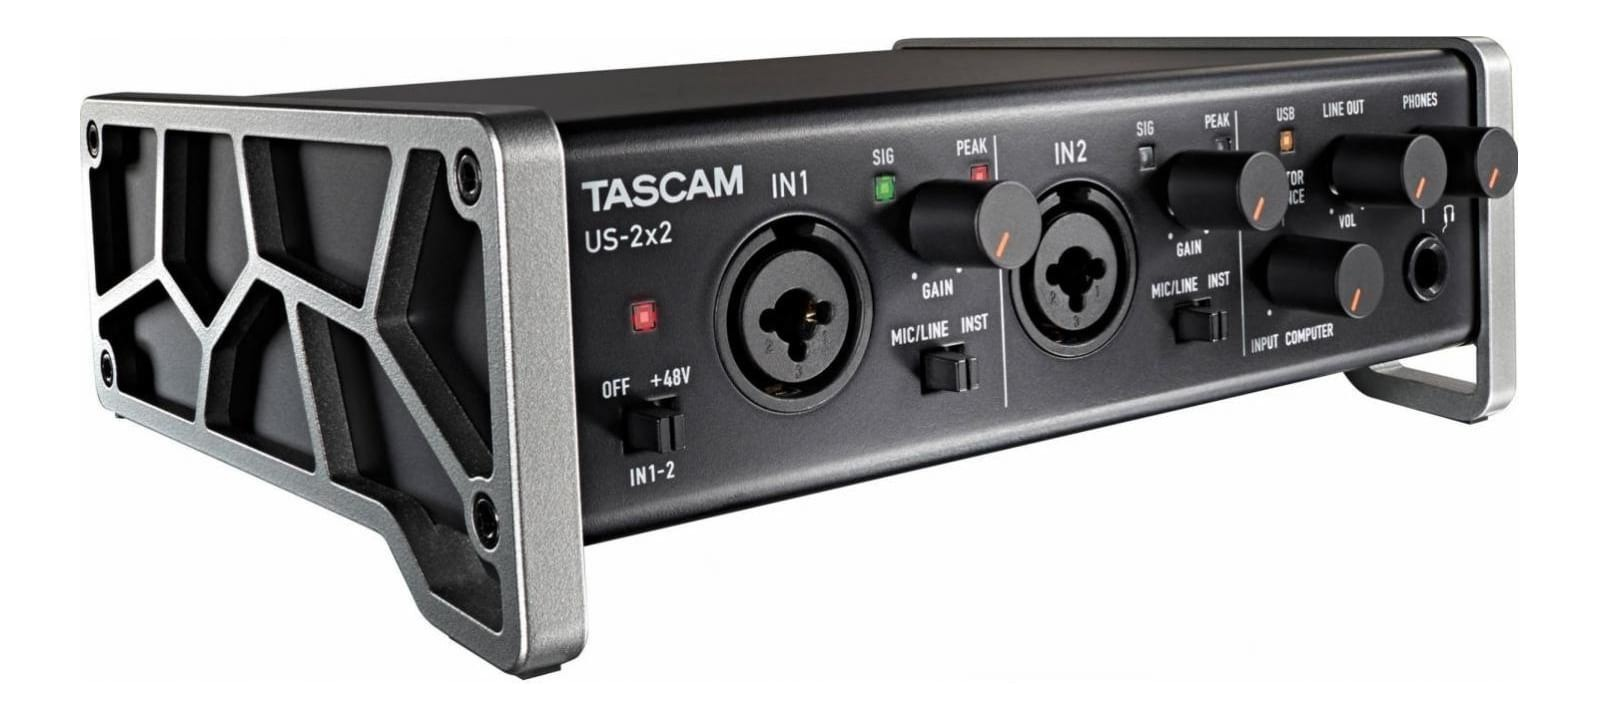 TASCAM US-2X2 2-in 2-out Audio MIDI Interface for Mac, Windows, iOS iPad USB 2.0